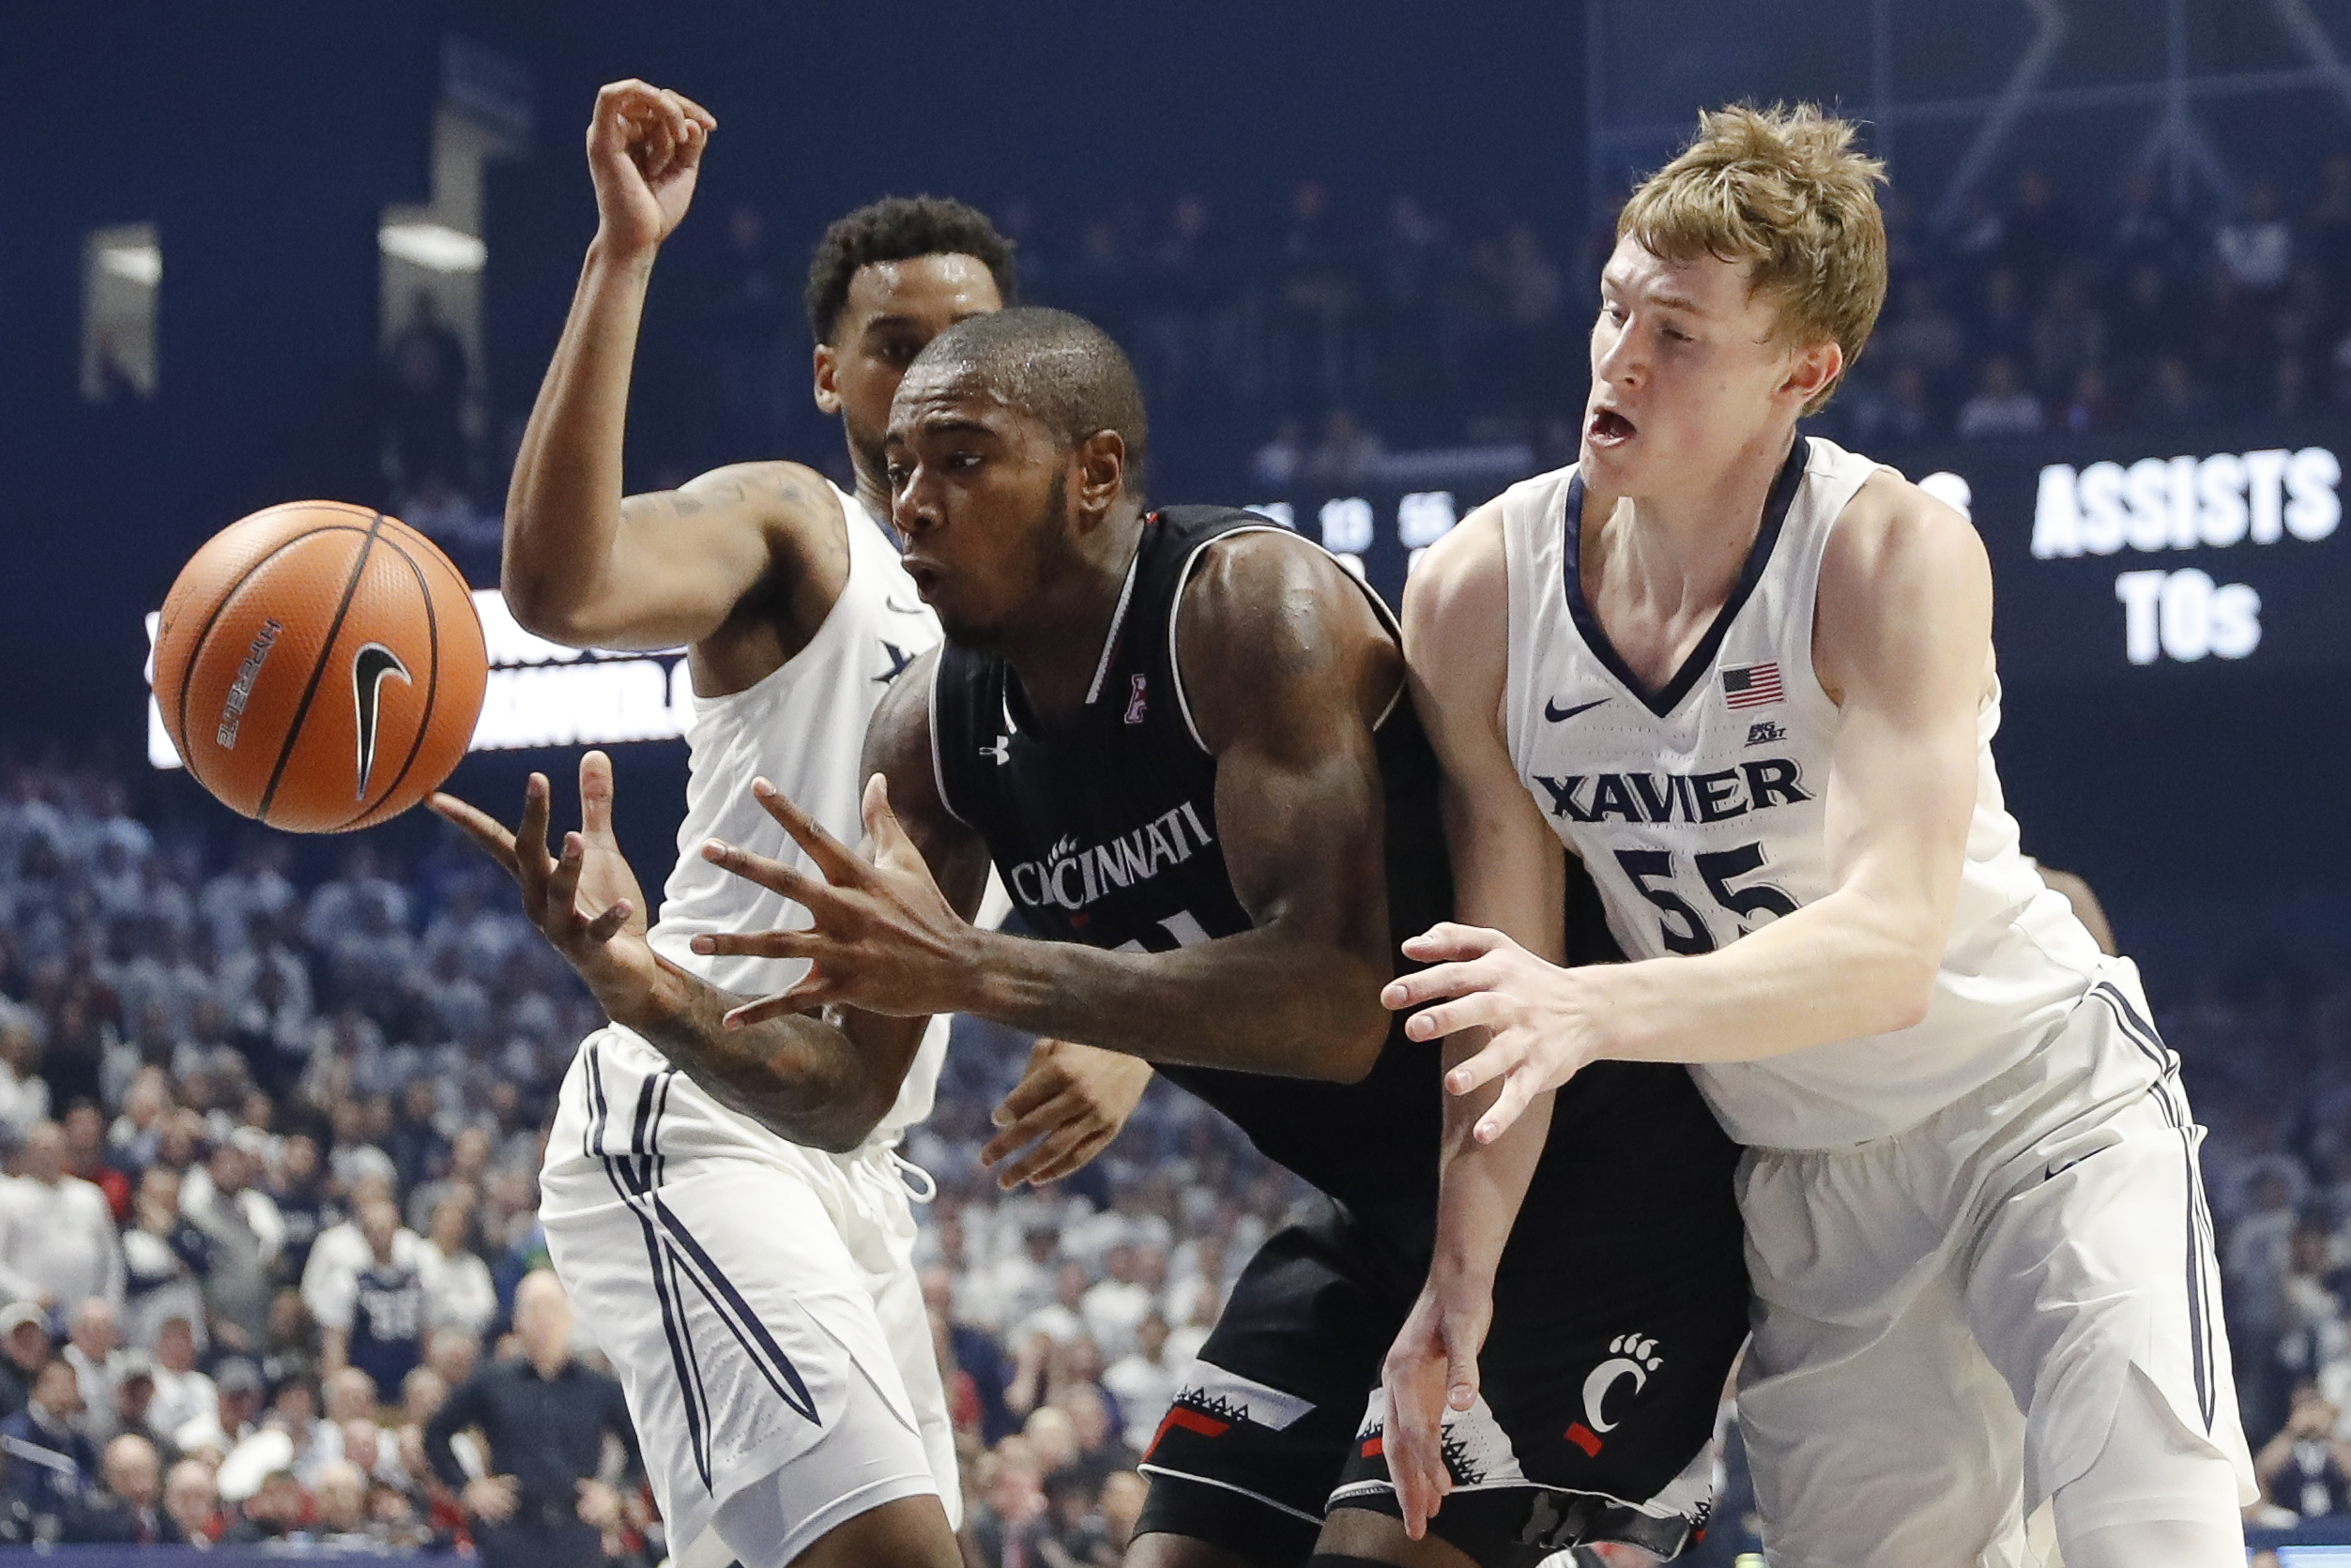 Cincinnati's Gary Clark, center, and Xavier's J.P. Macura (55) battle for a rebound in the first half of an NCAA college basketball game, Saturday, Dec. 2, 2017, in Cincinnati. (AP Photo/John Minchillo)